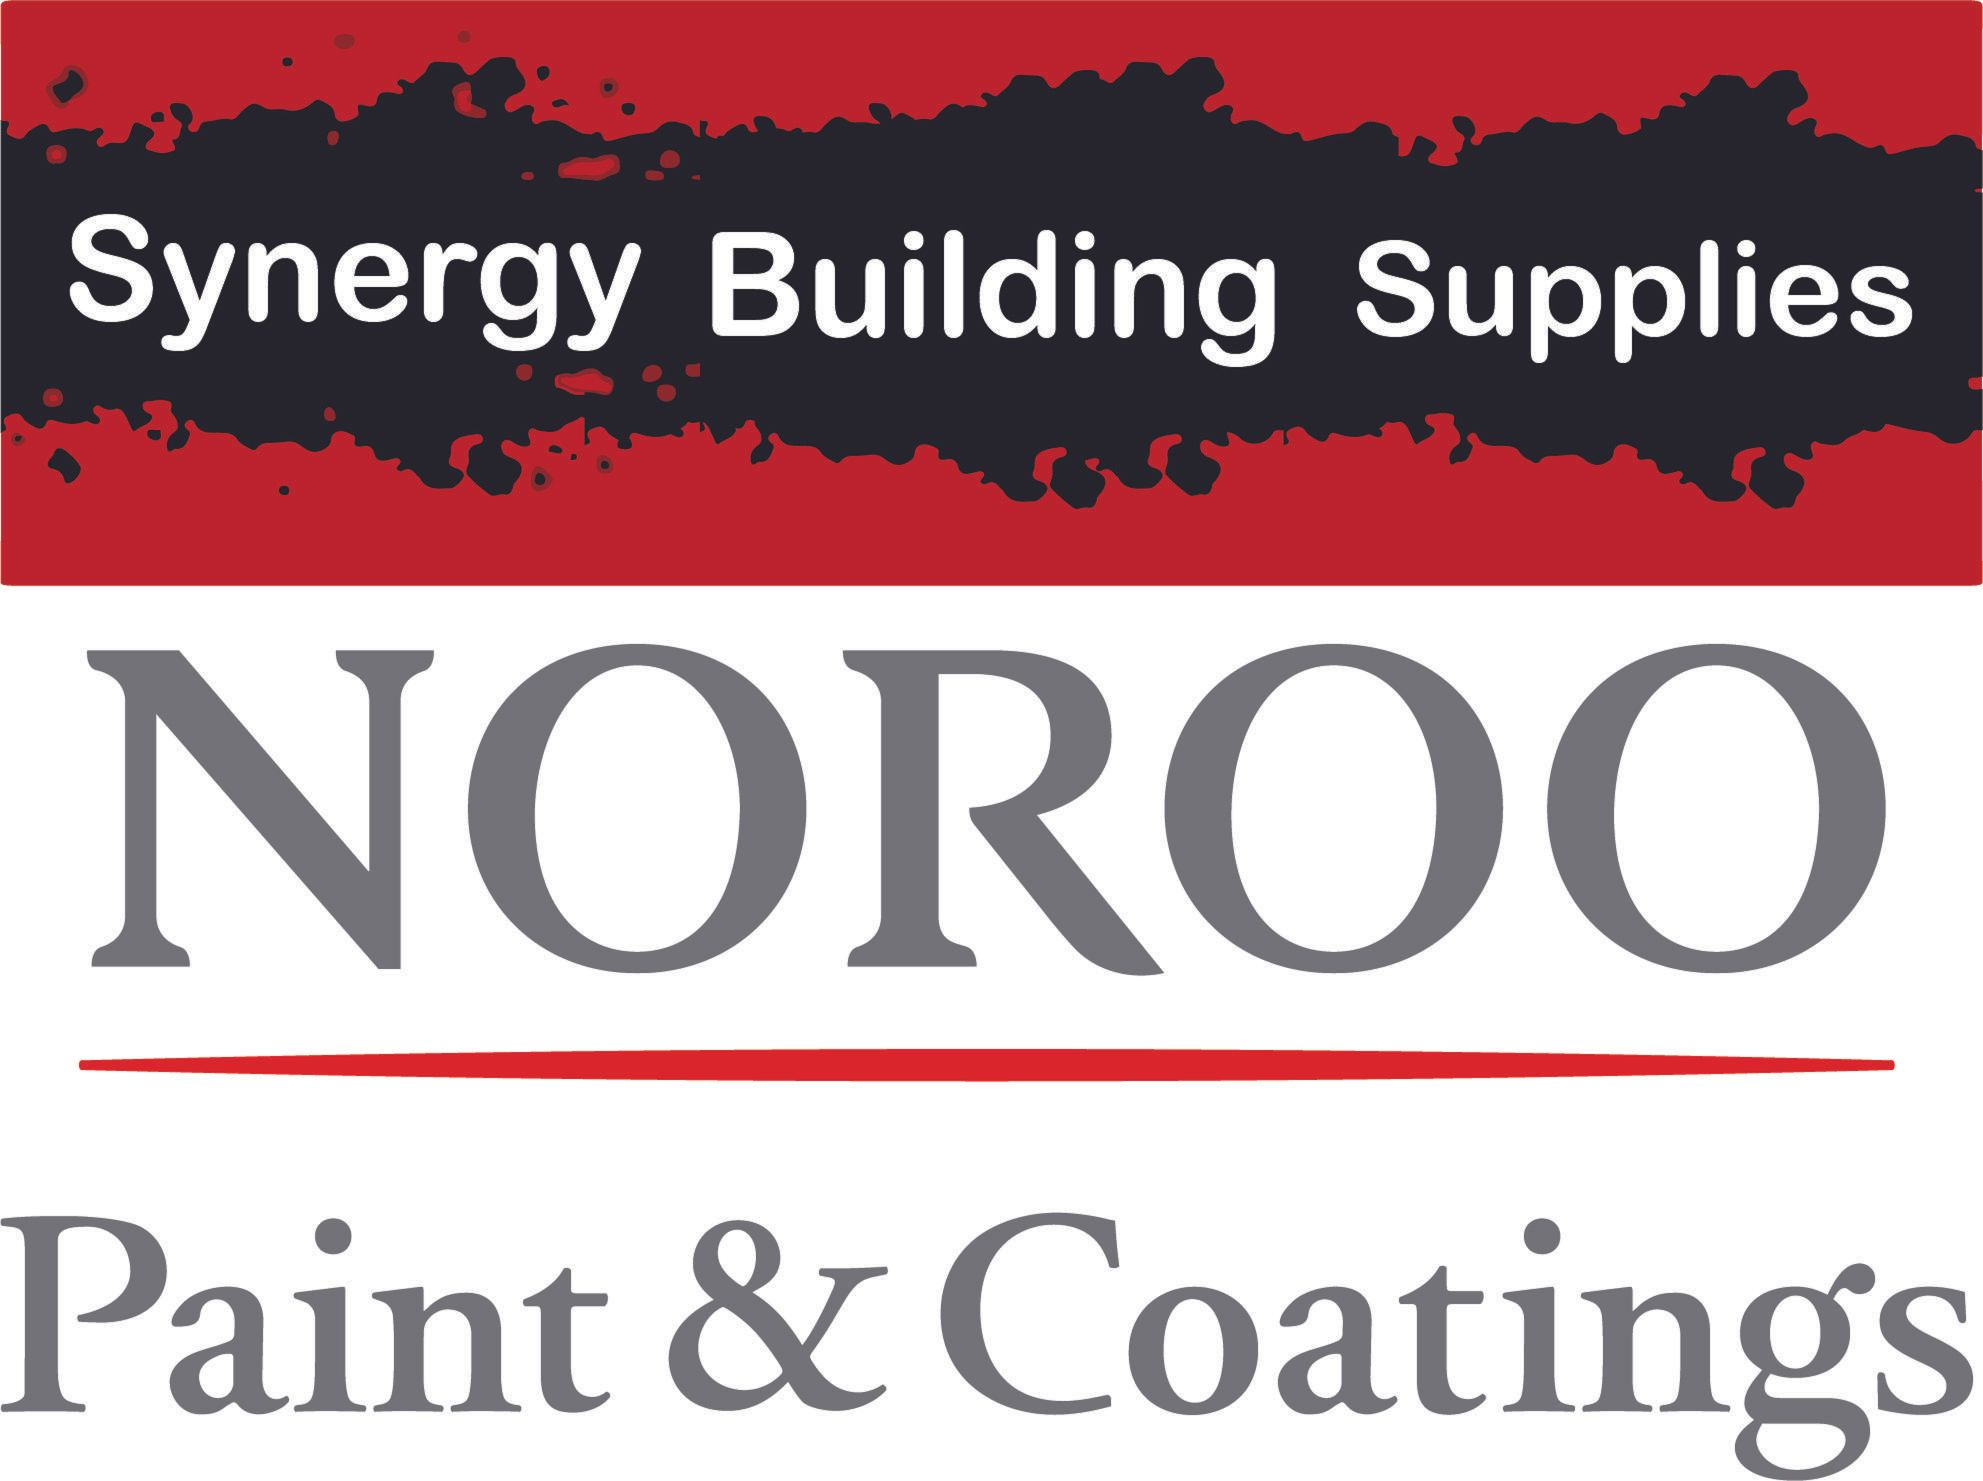 Synergy Building Supplies